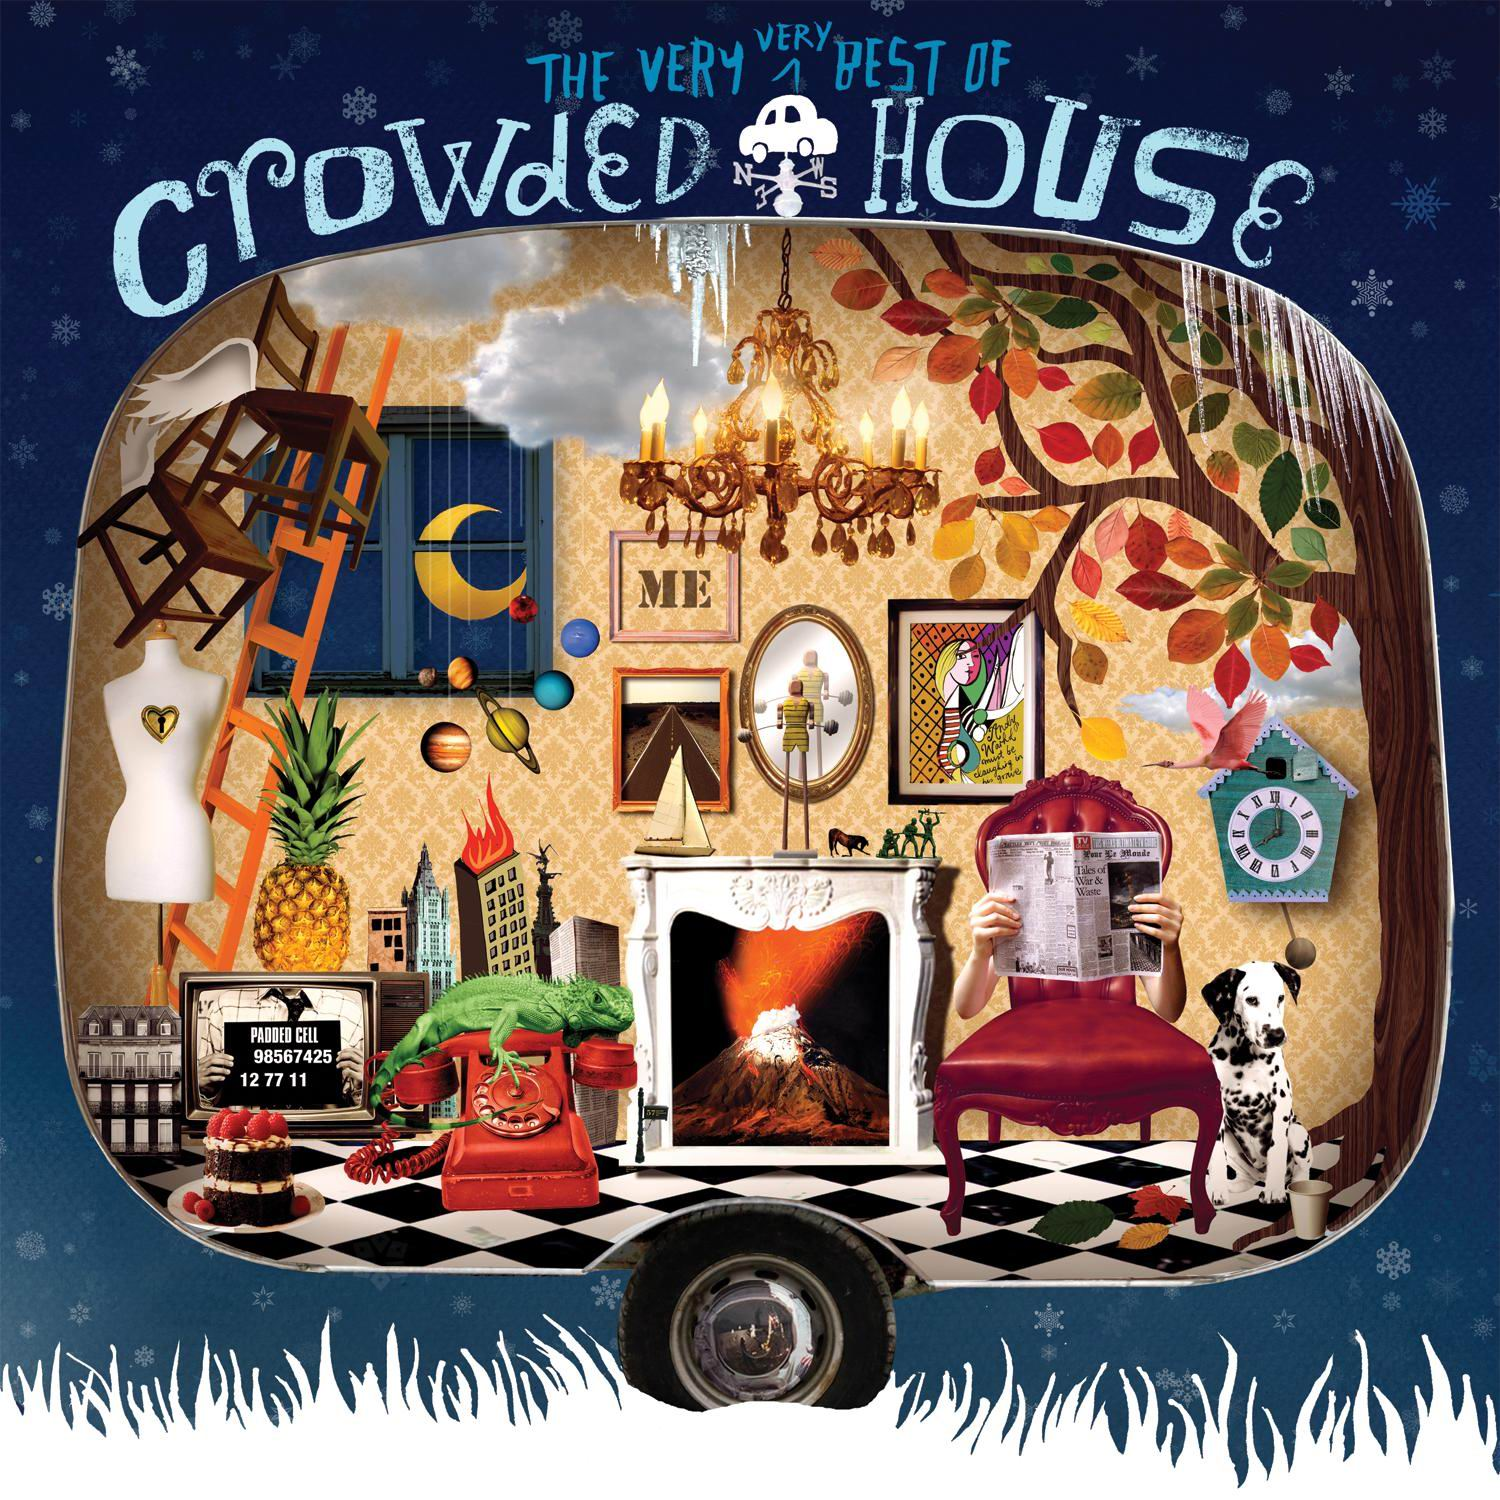 Crowded house the very very best of crowded house for Best house hits